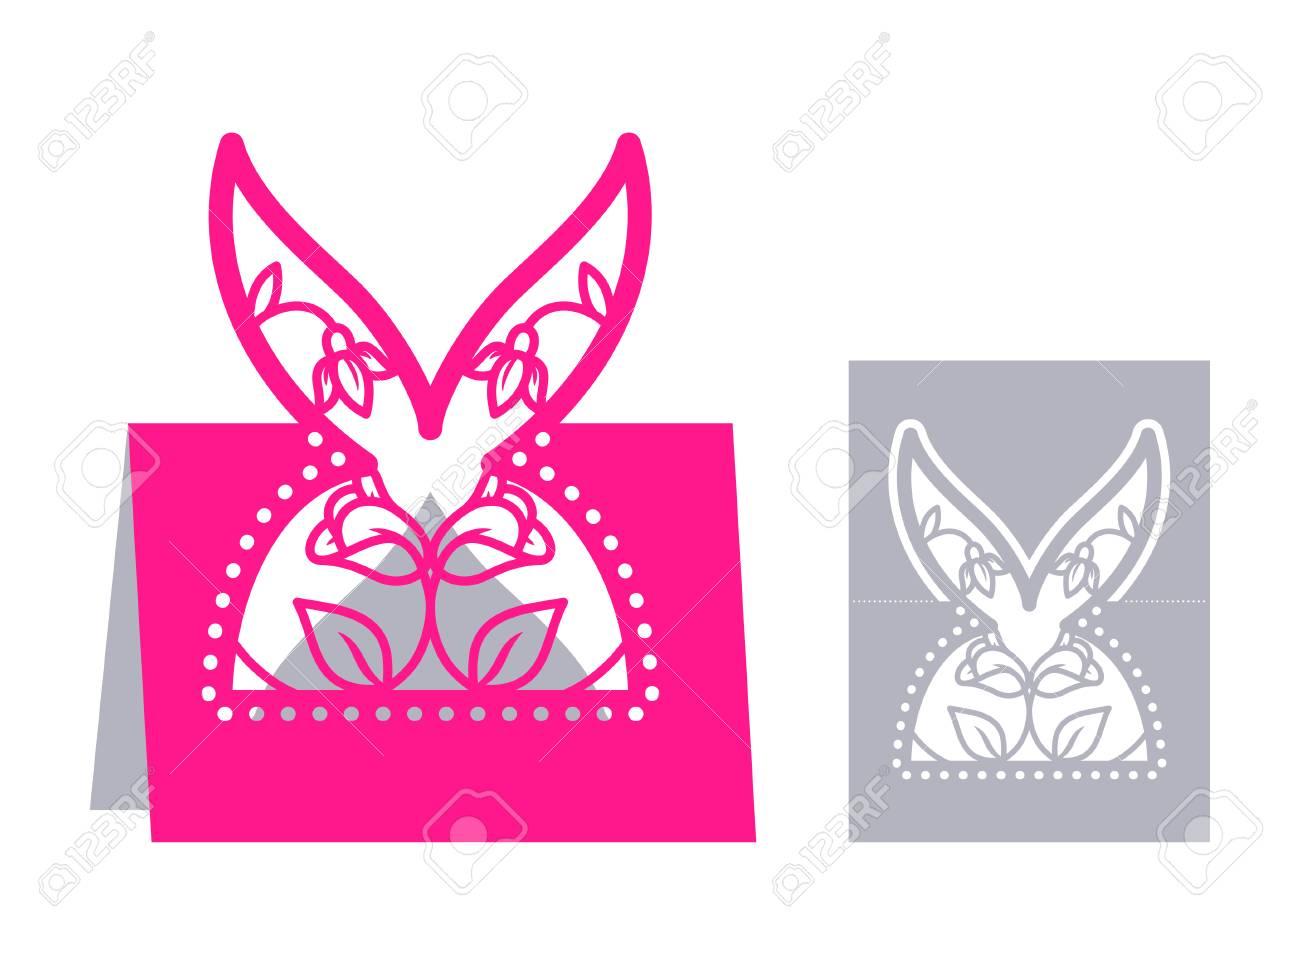 Laser Cut Template For Easter Greeting Fold-out Cards, Invitations ...